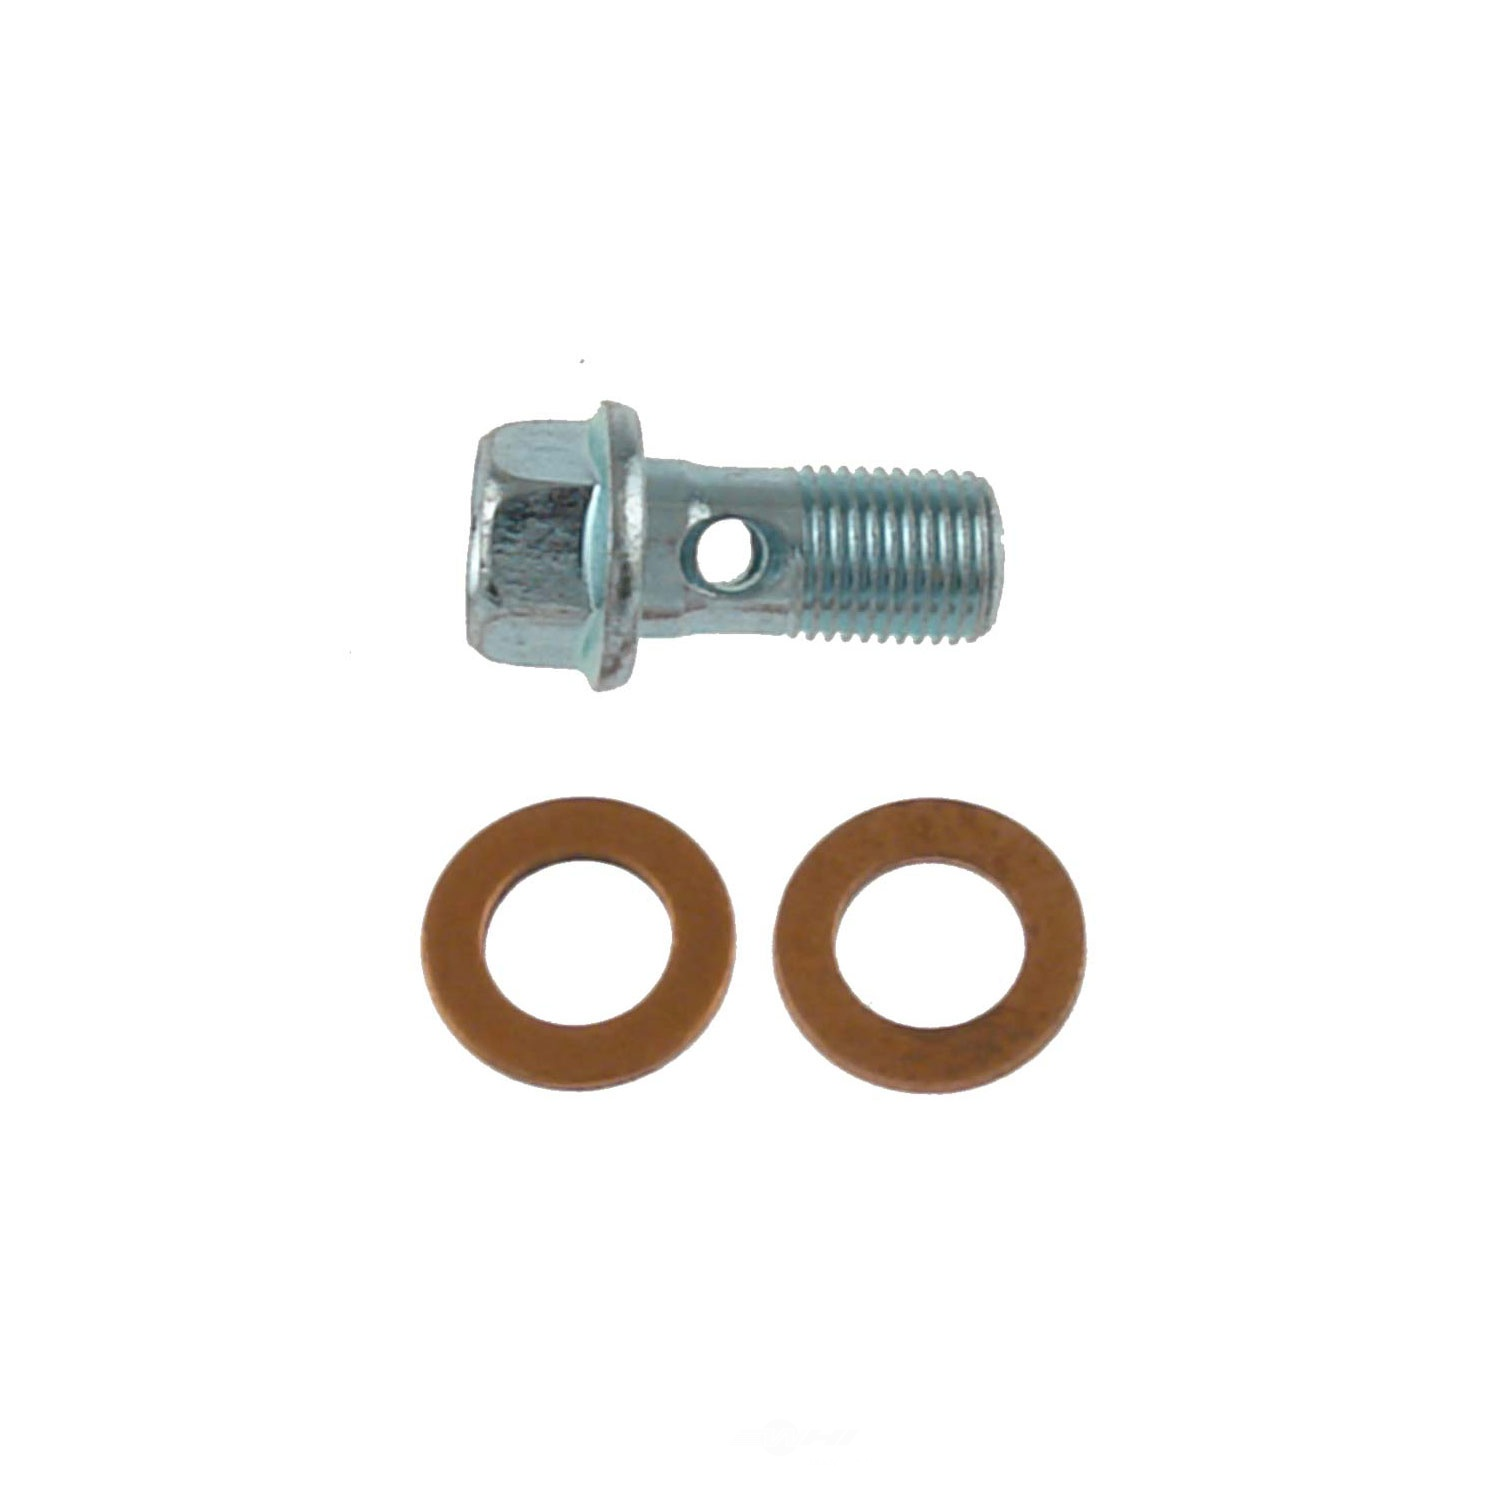 CARLSON QUALITY BRAKE PARTS - Brake Hydraulic Banjo Bolt - CRL H9471-2